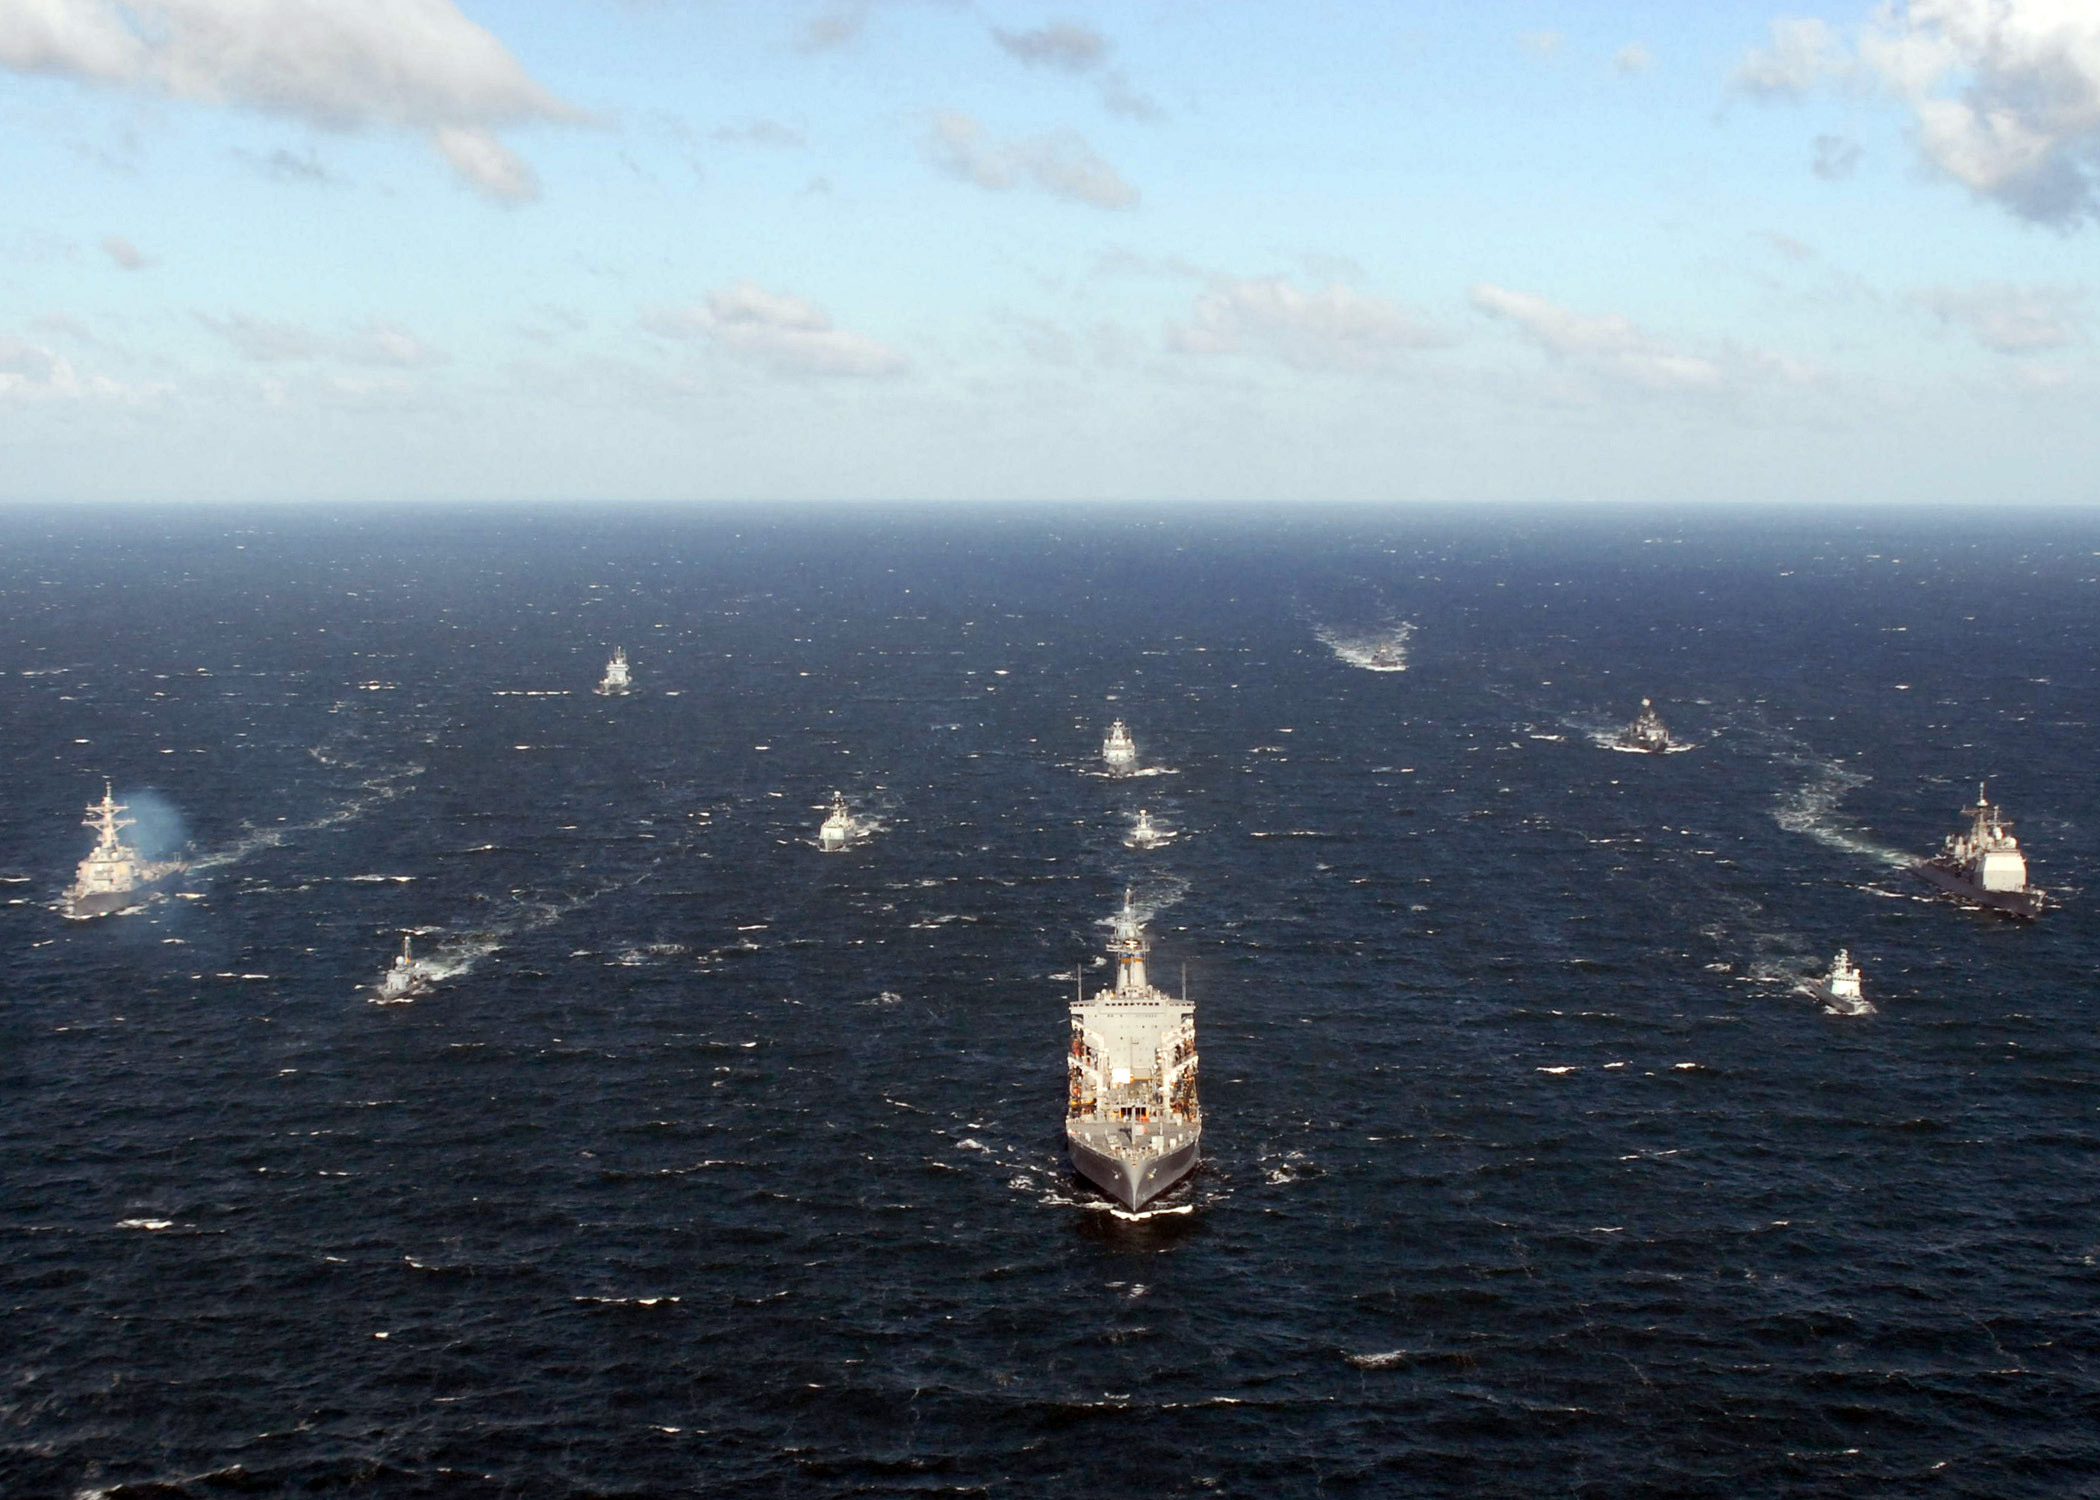 US_Navy_080611-N-3396B-129_Ships_from_various_navies_participating_in_Baltic_Operations_%28BALTOPS%29_maneuver_into_formation.jpg